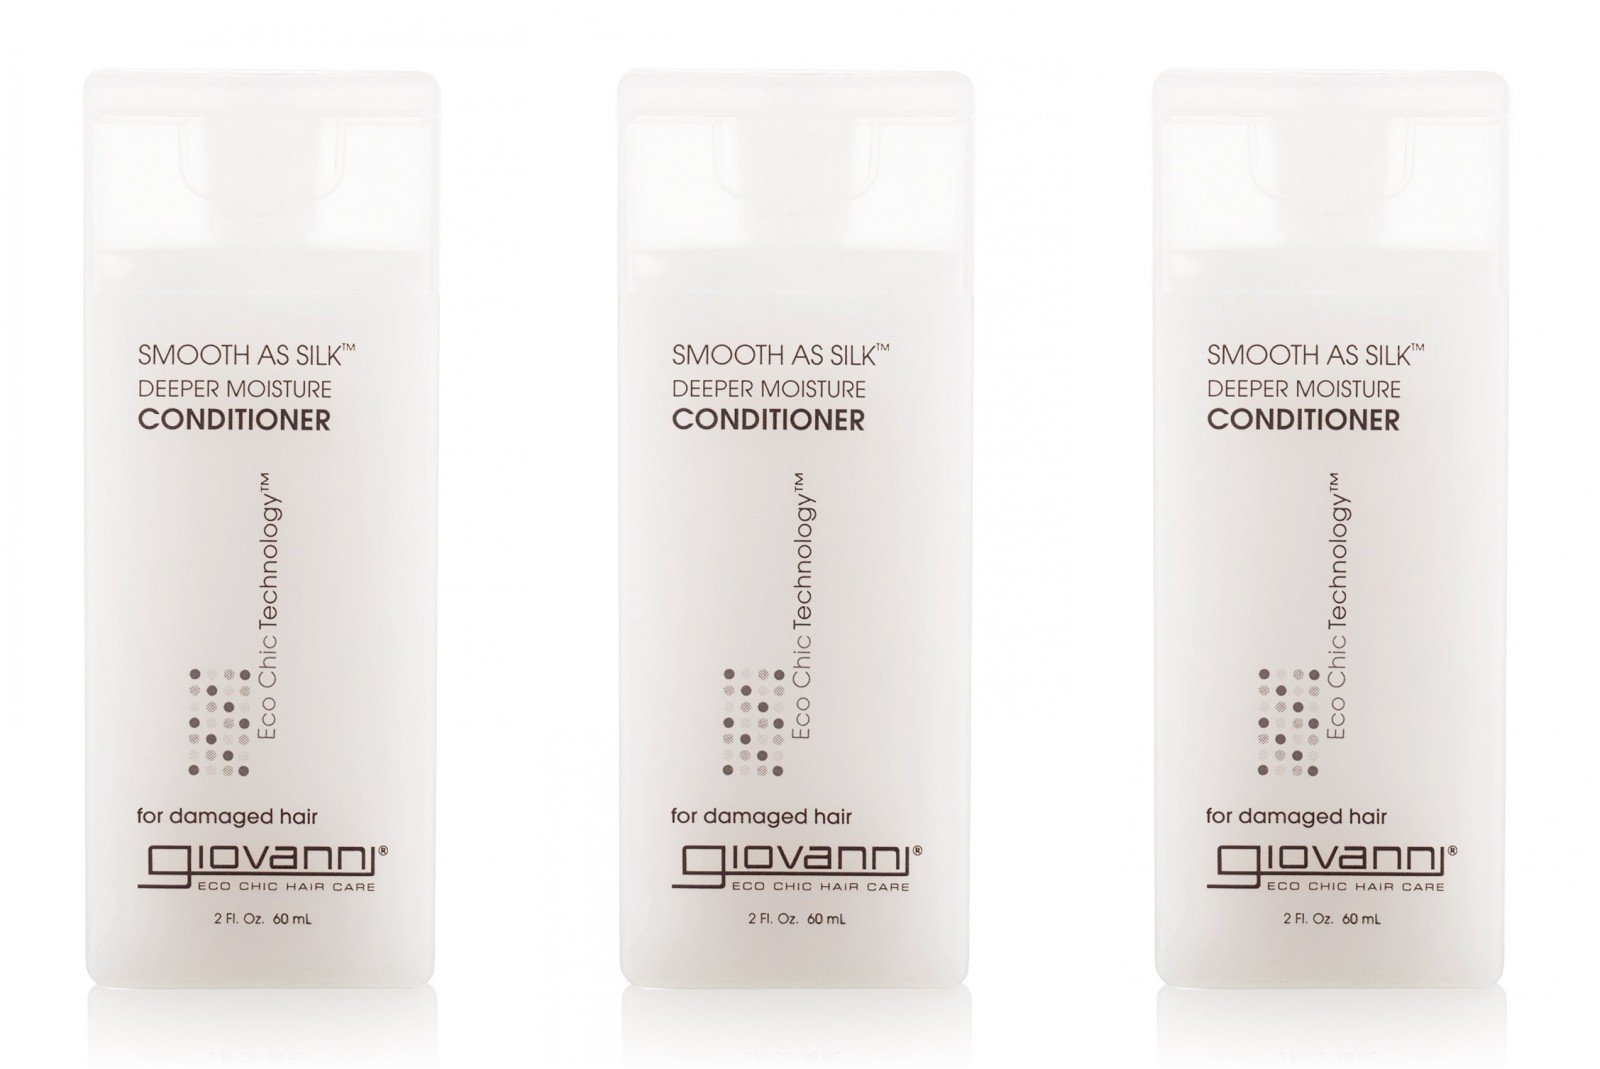 Giovanni Cosmetics Conditioner Smooth As Silk 2 Oz Travel Size (Pack of 3)